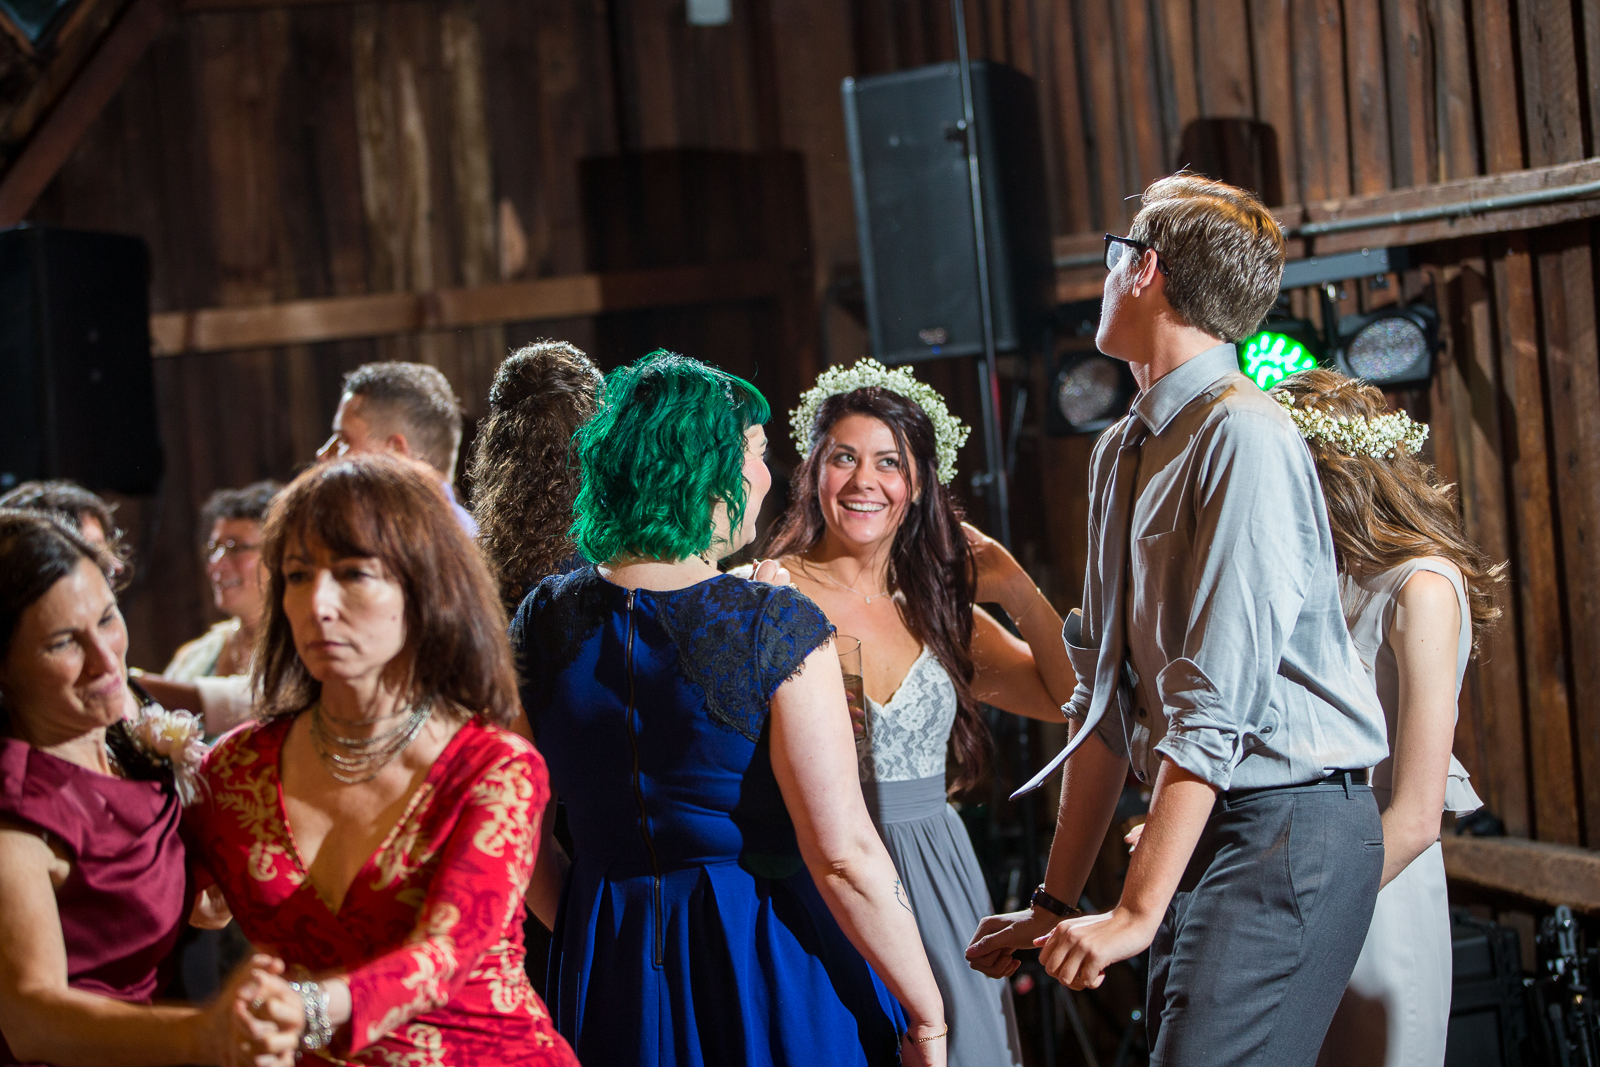 Four_Wings_Photography_Wedding_Red_Barn_at_Hampshire_College-42.jpg